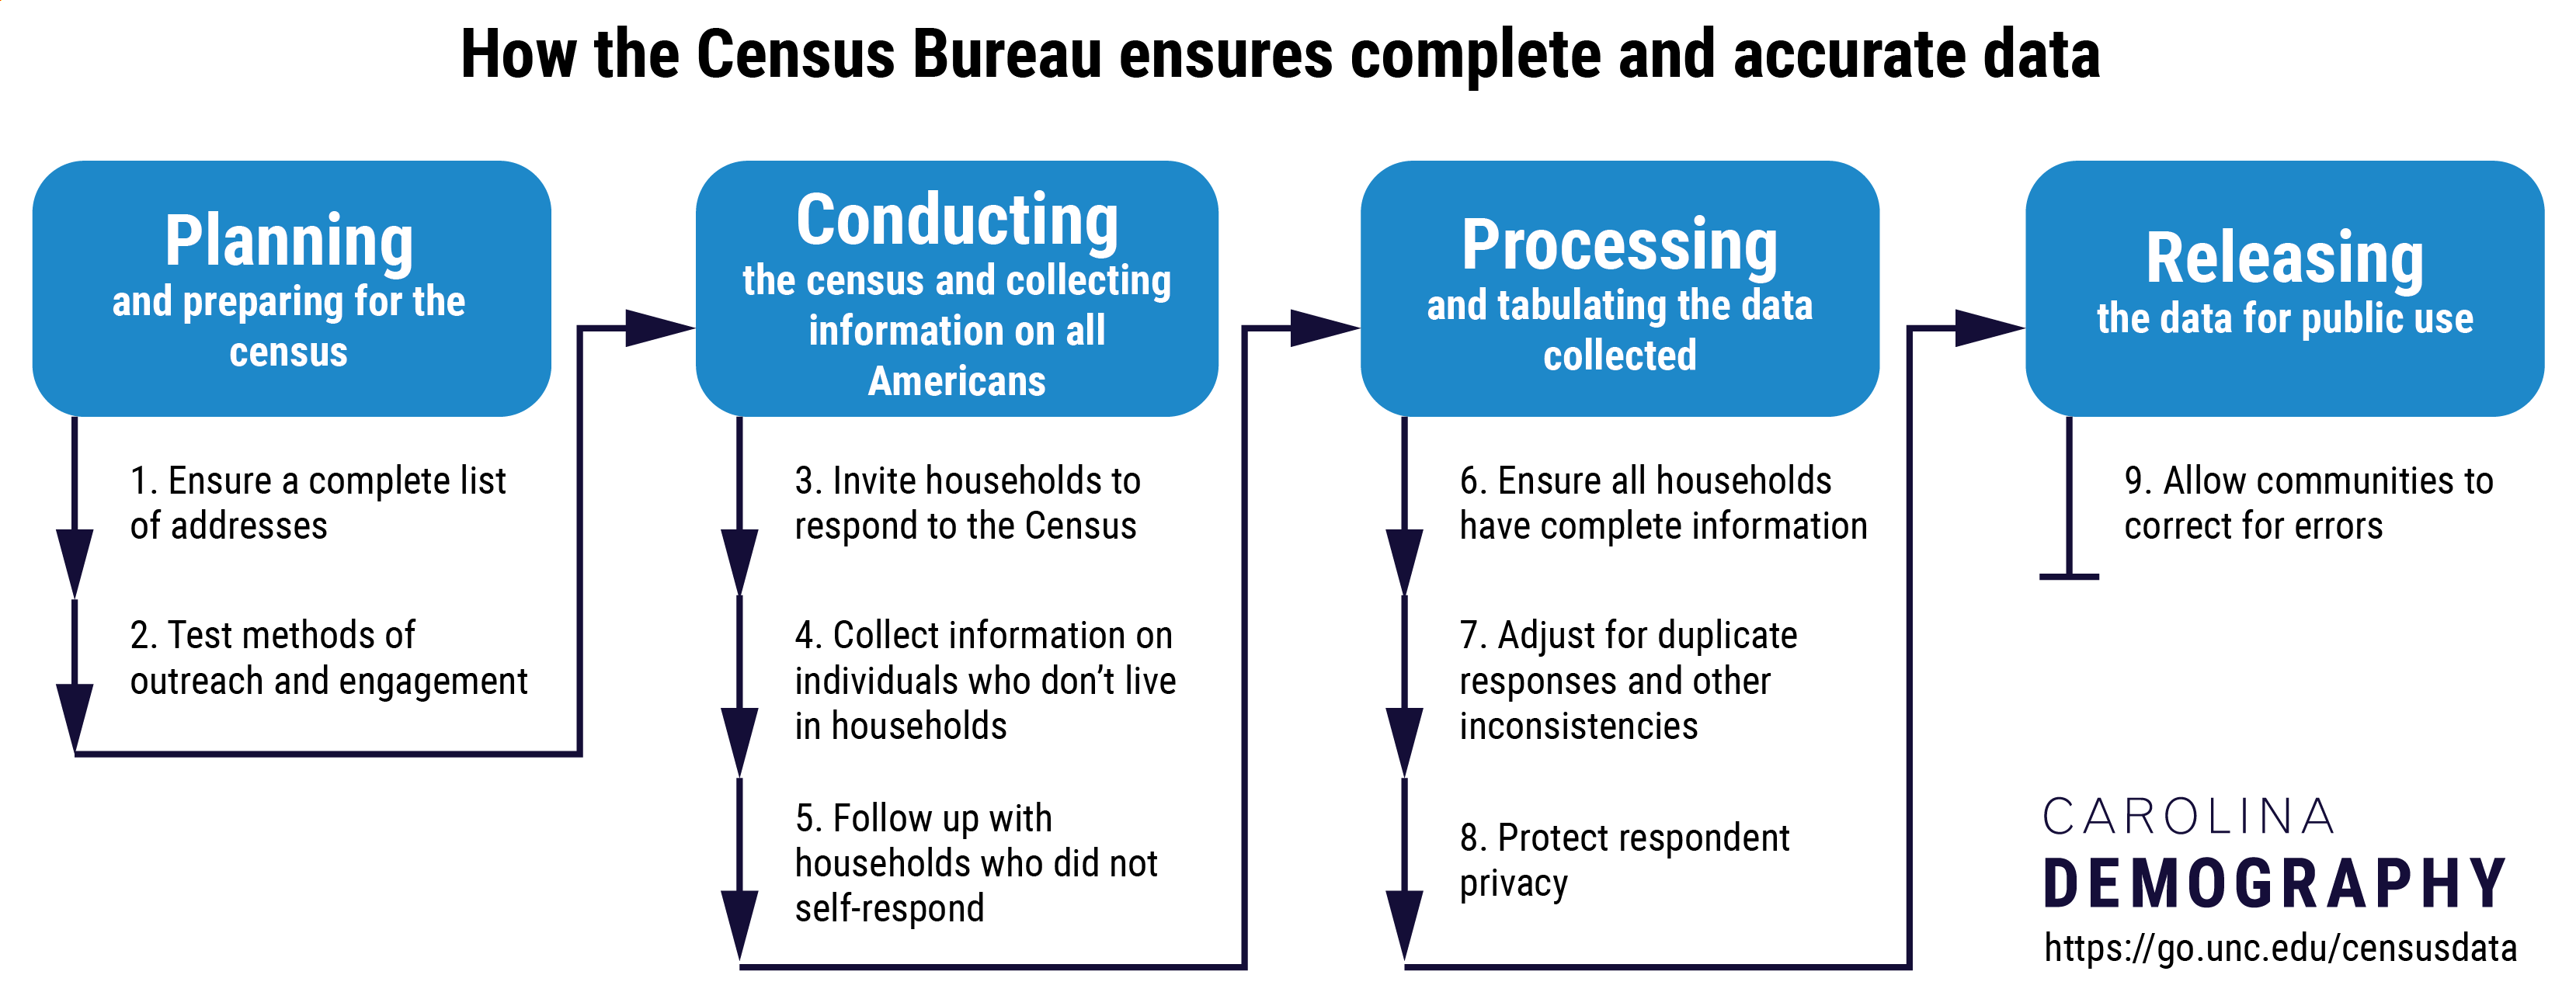 How the Census Bureau ensures complete and accurate data